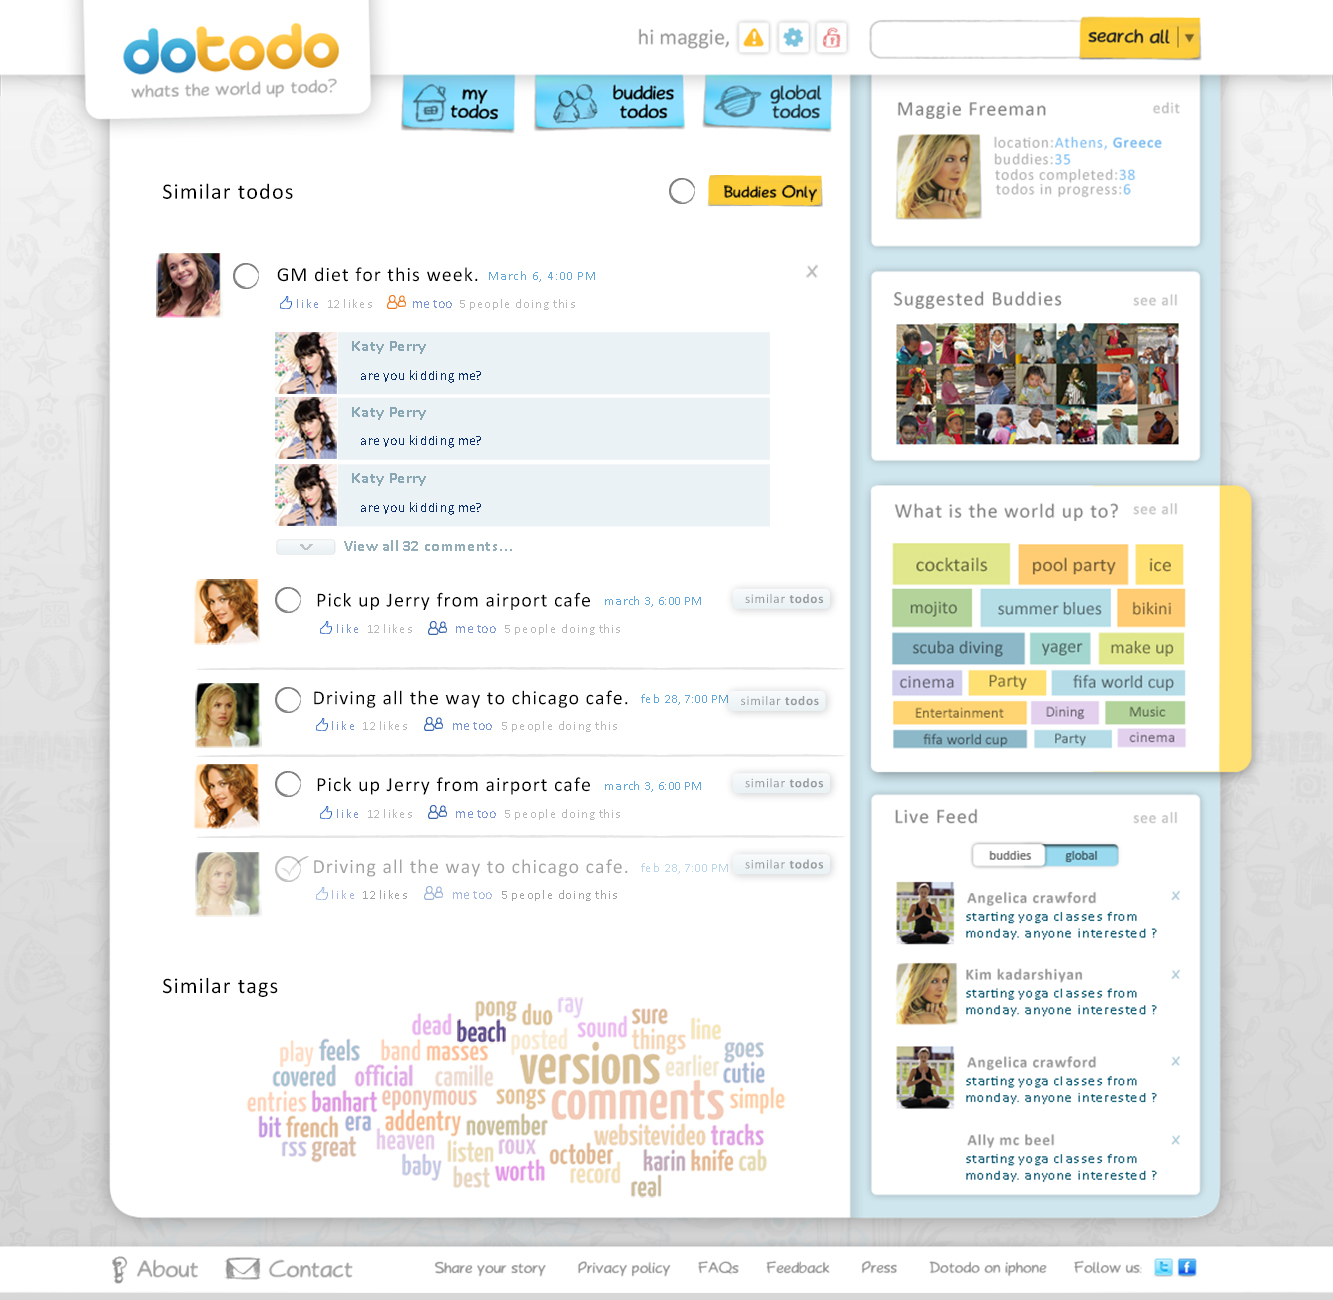 dotodo -web 3.0 business platform